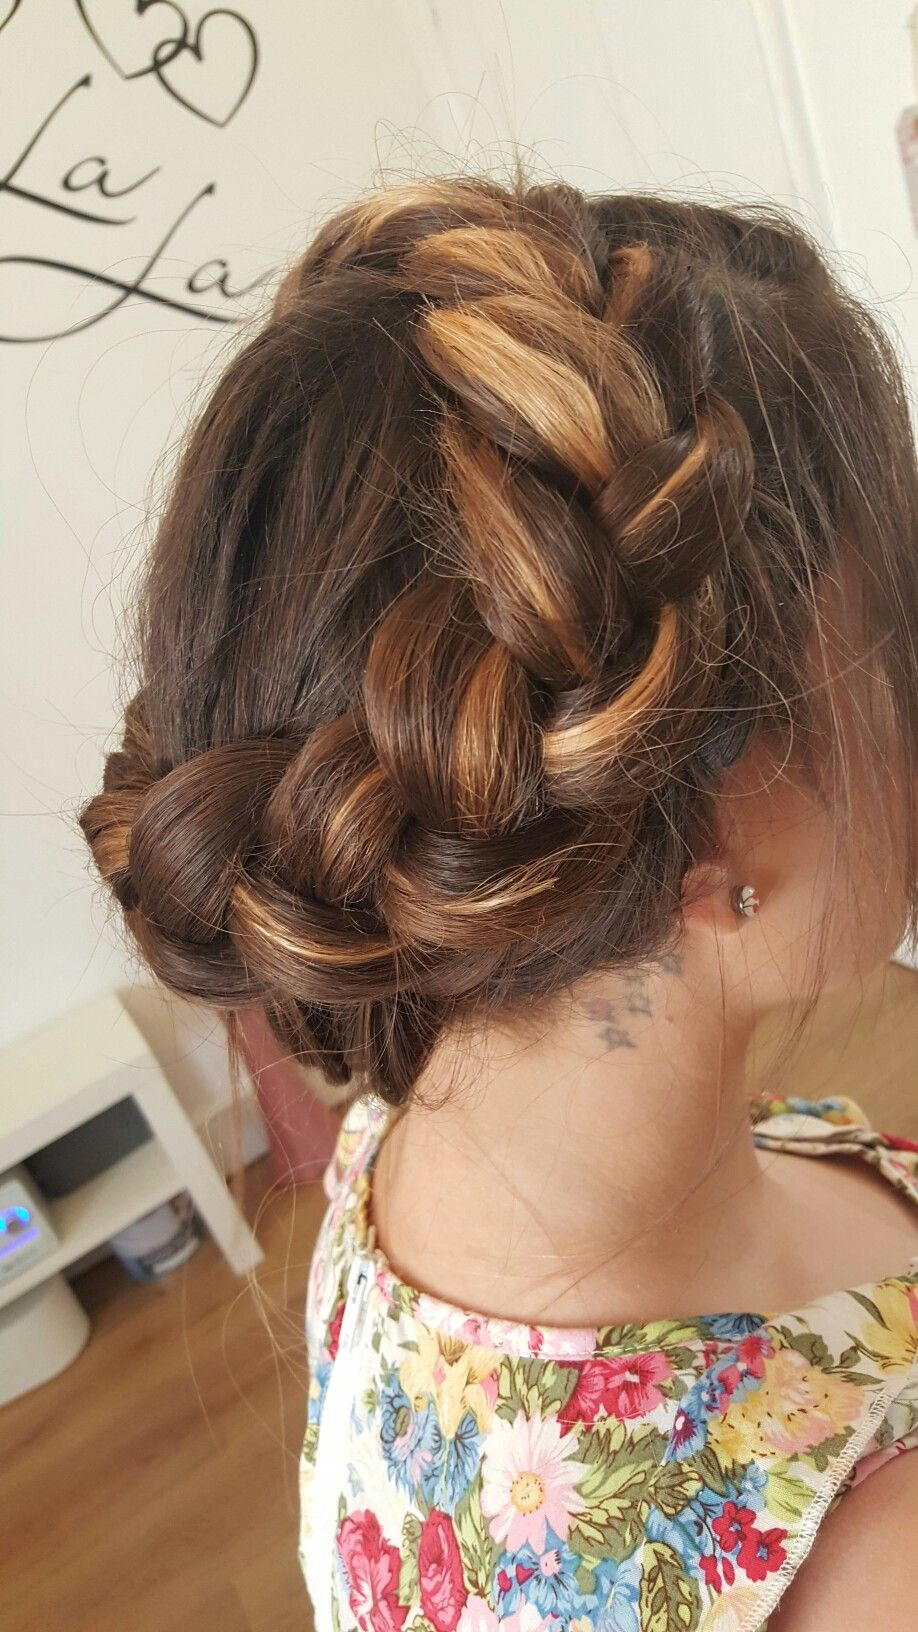 Best Of French Braid Hairstyles with Extensions